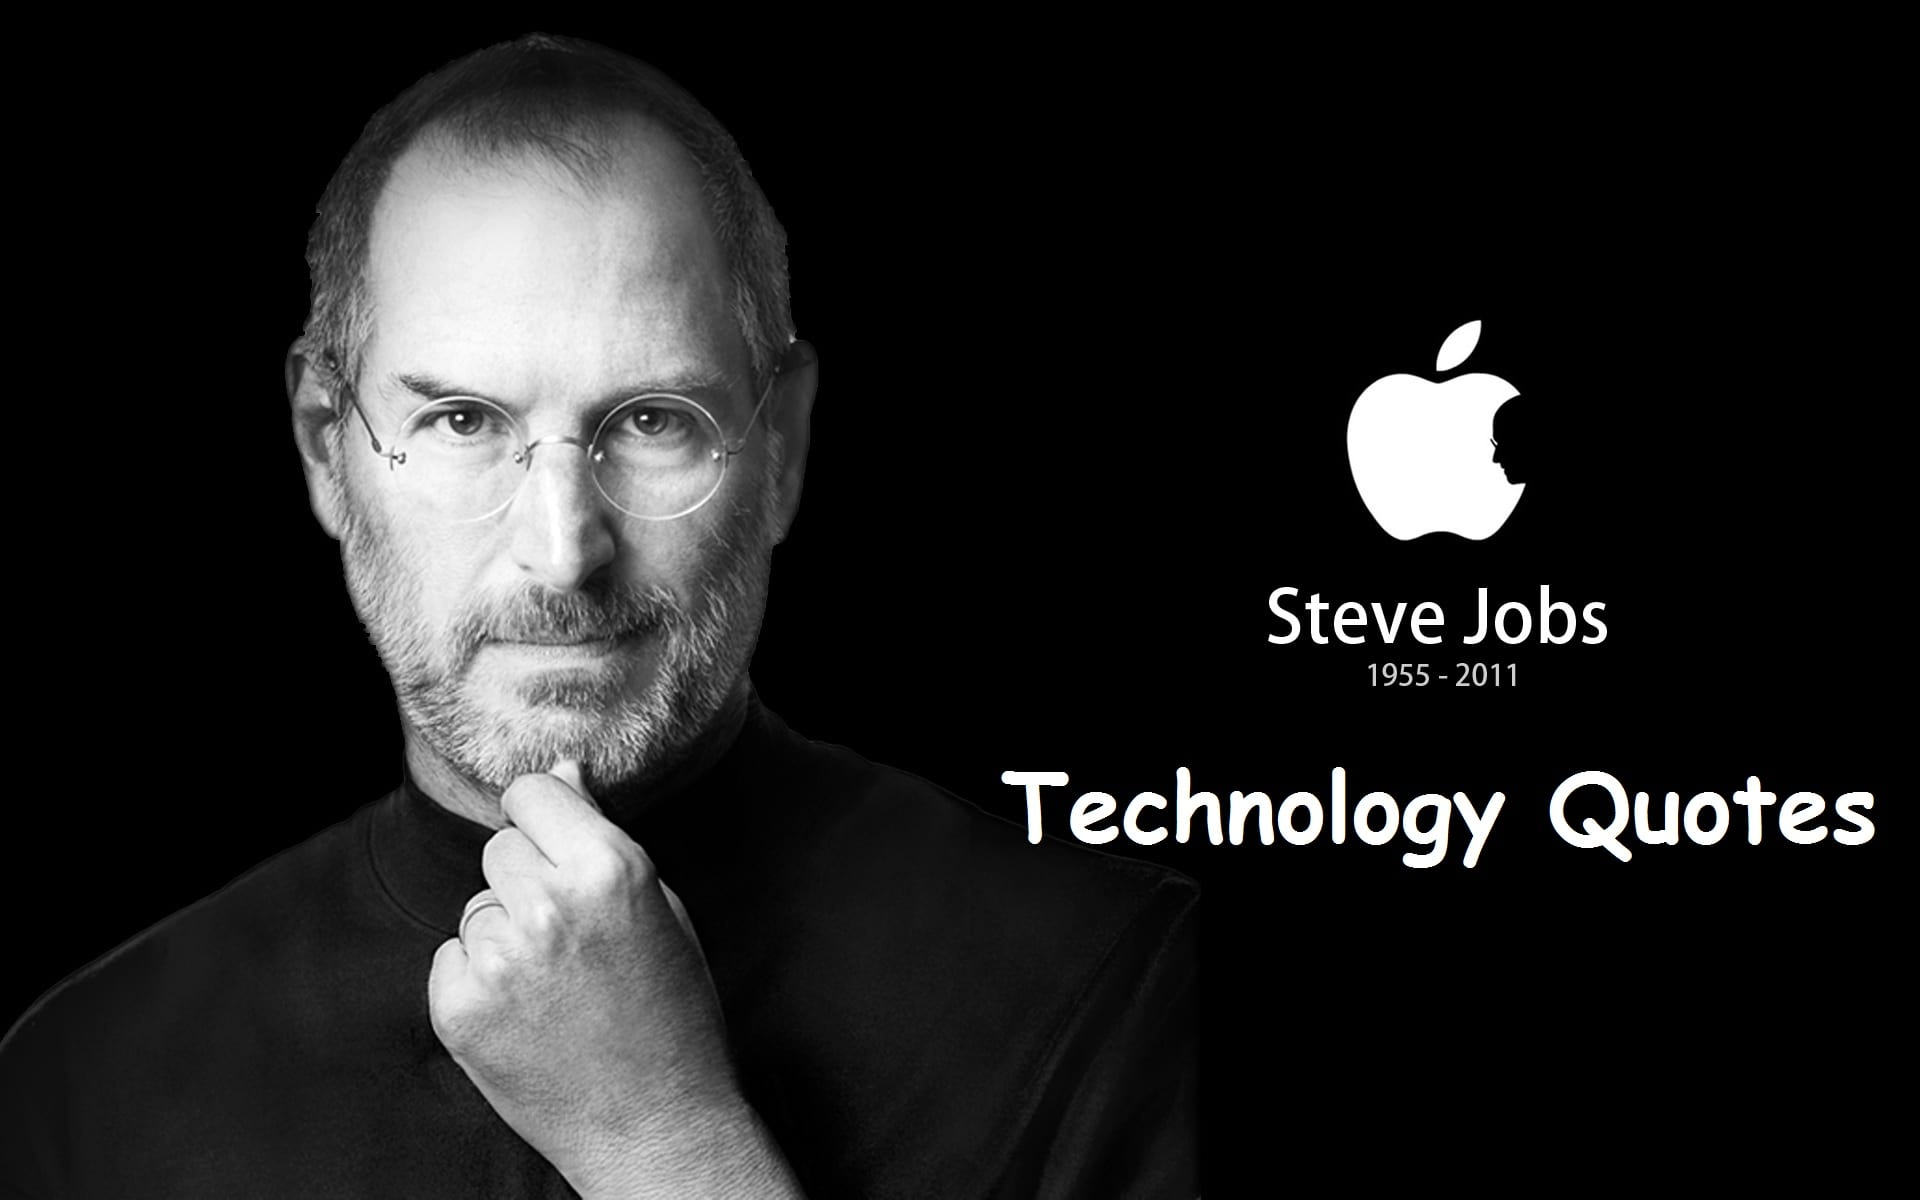 Steve Jobs late Apple CEO most inspirational quotes - Gizbot